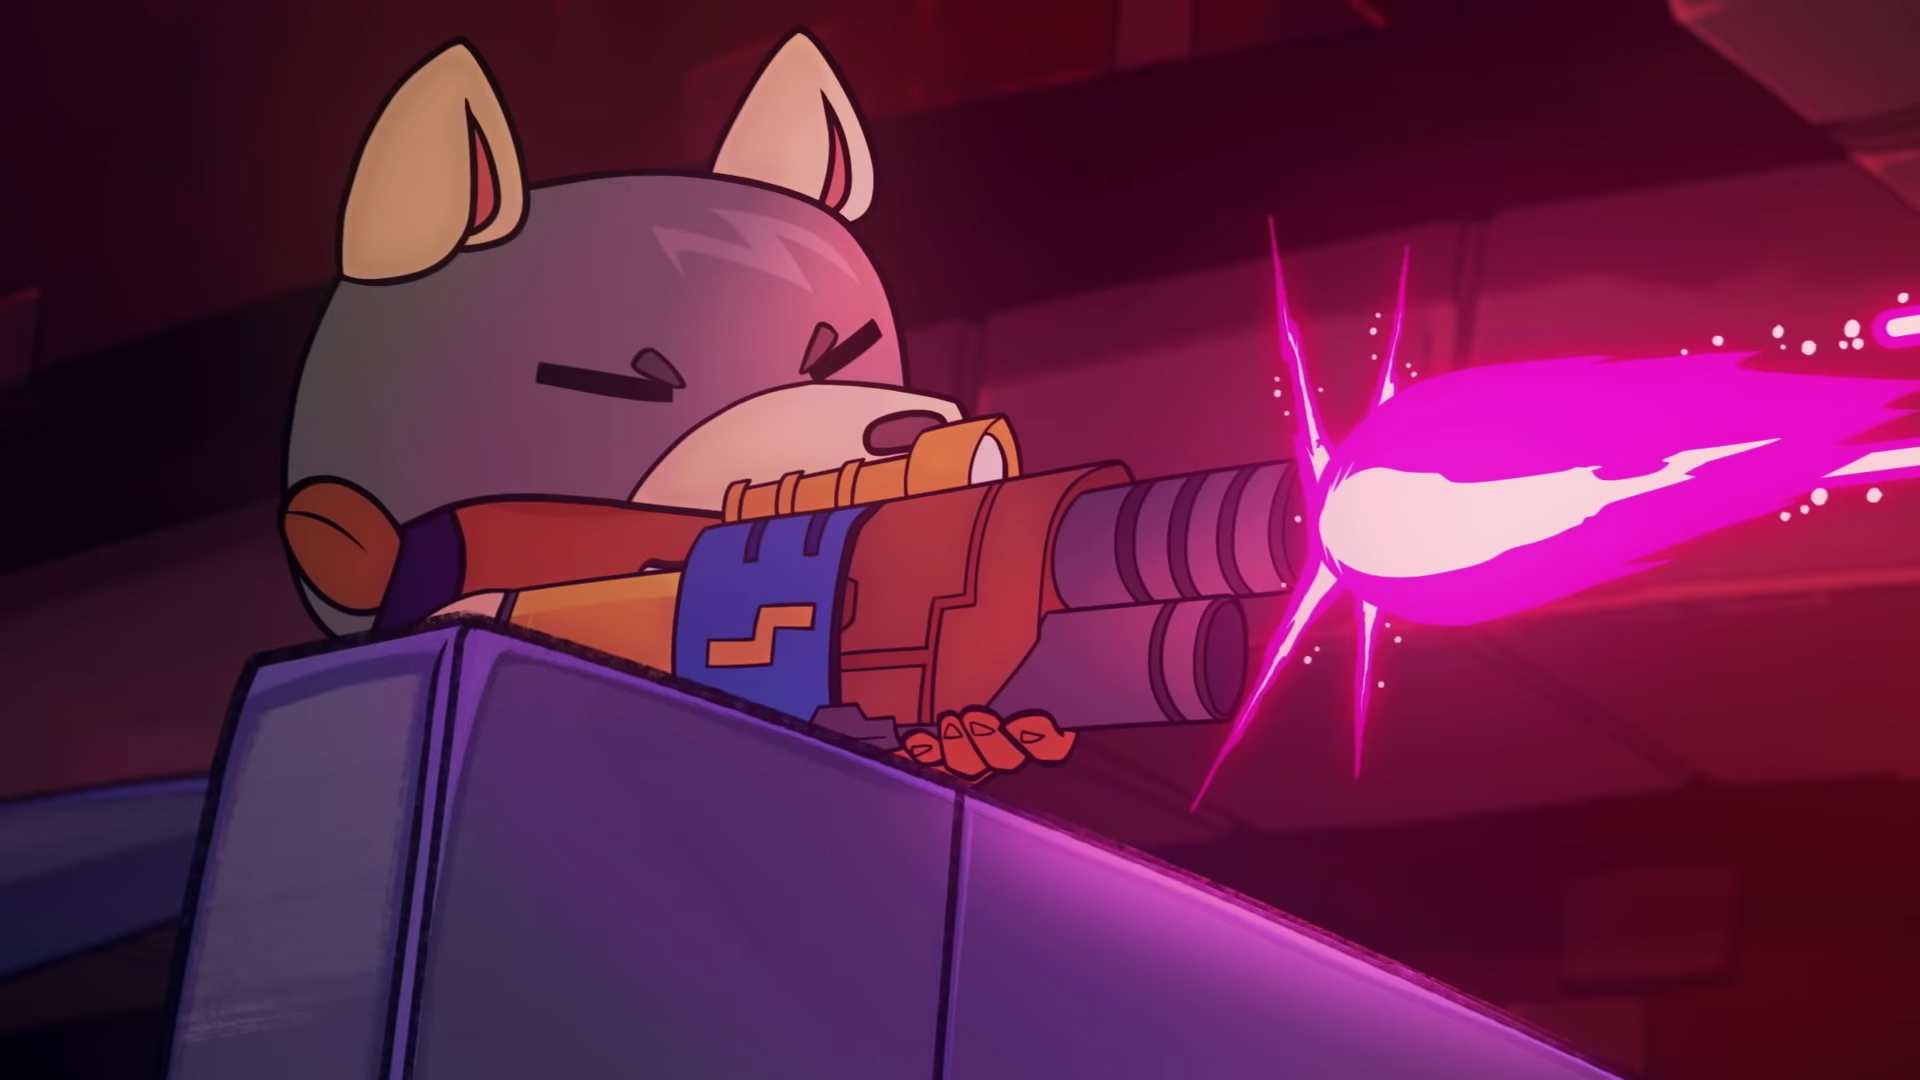 It's the perfect time to revisit Enter the Gungeon